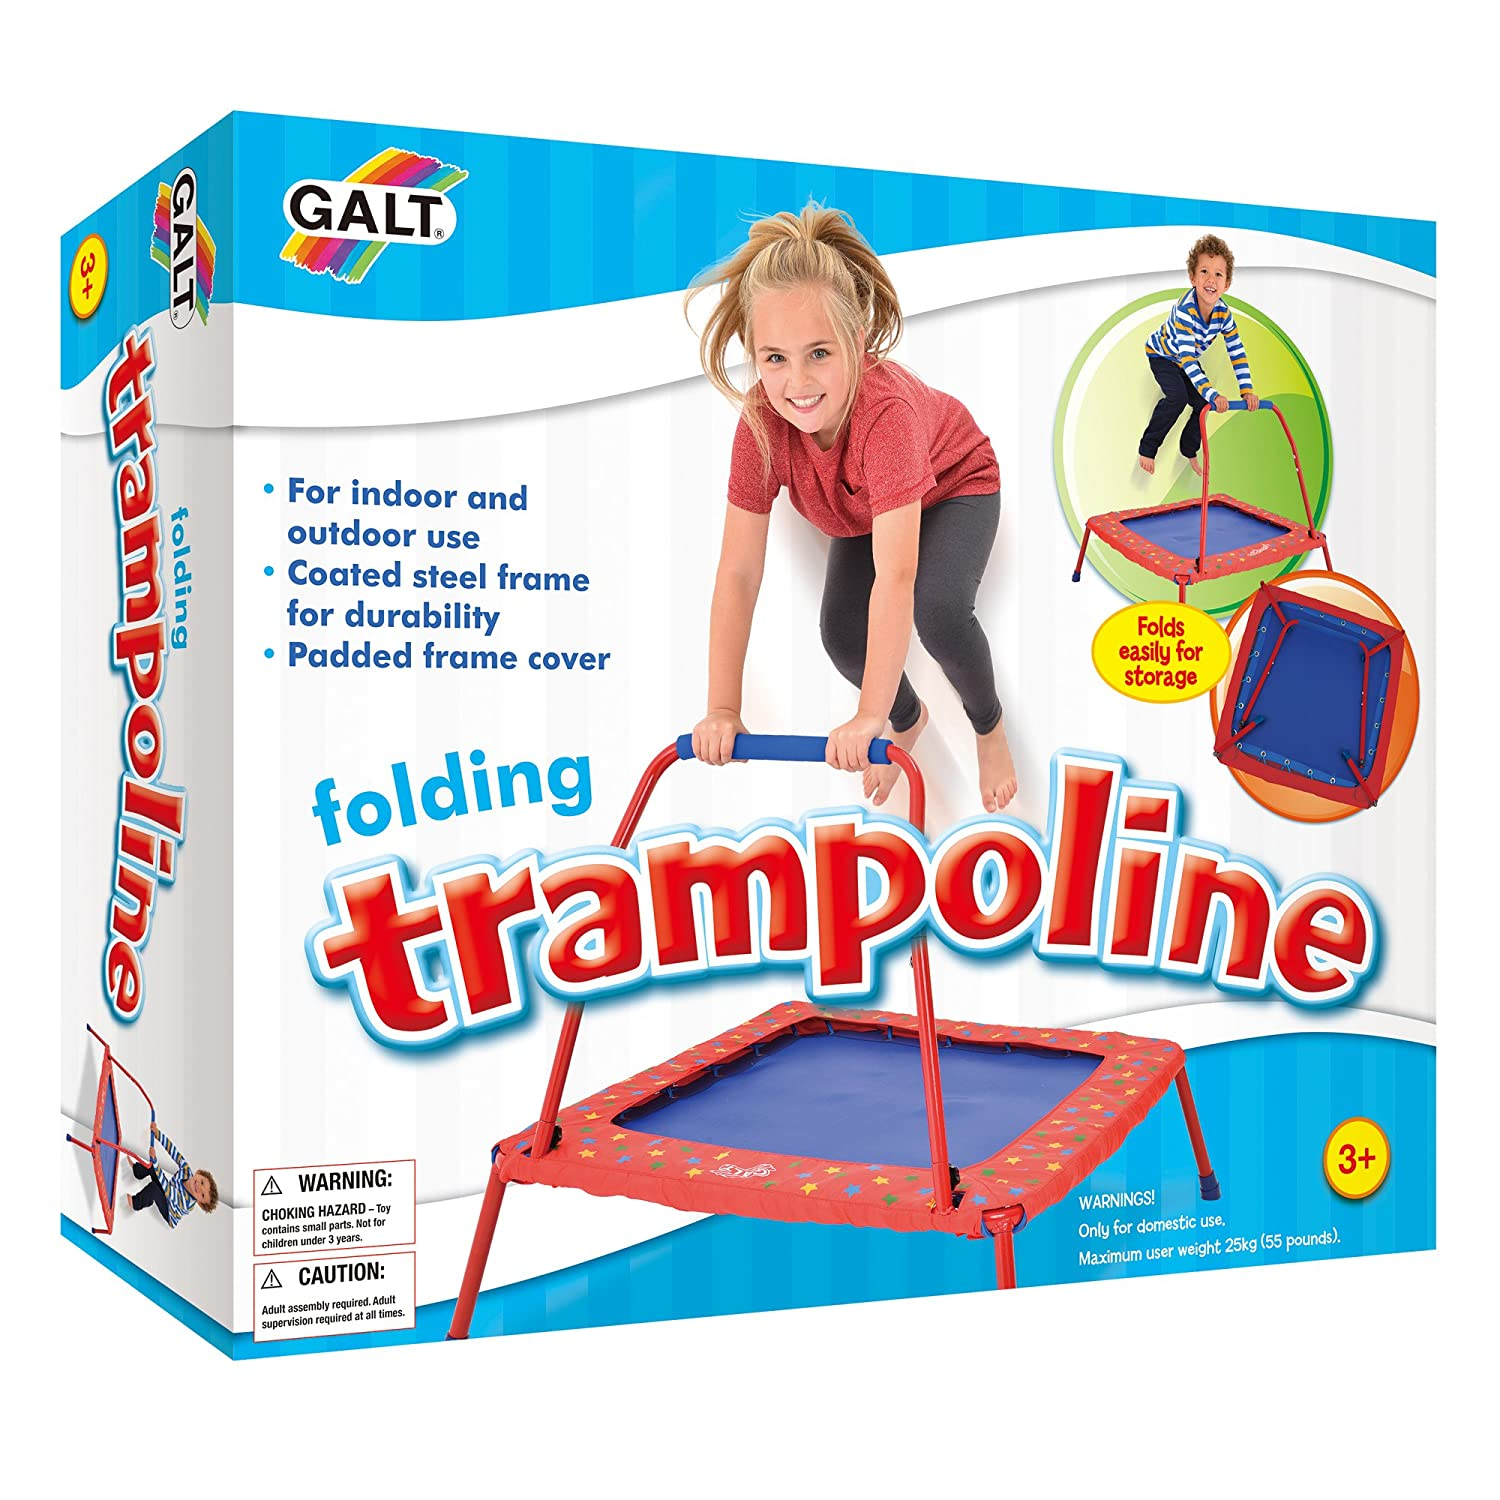 Amazon Galt Folding Trampoline Toys & Games